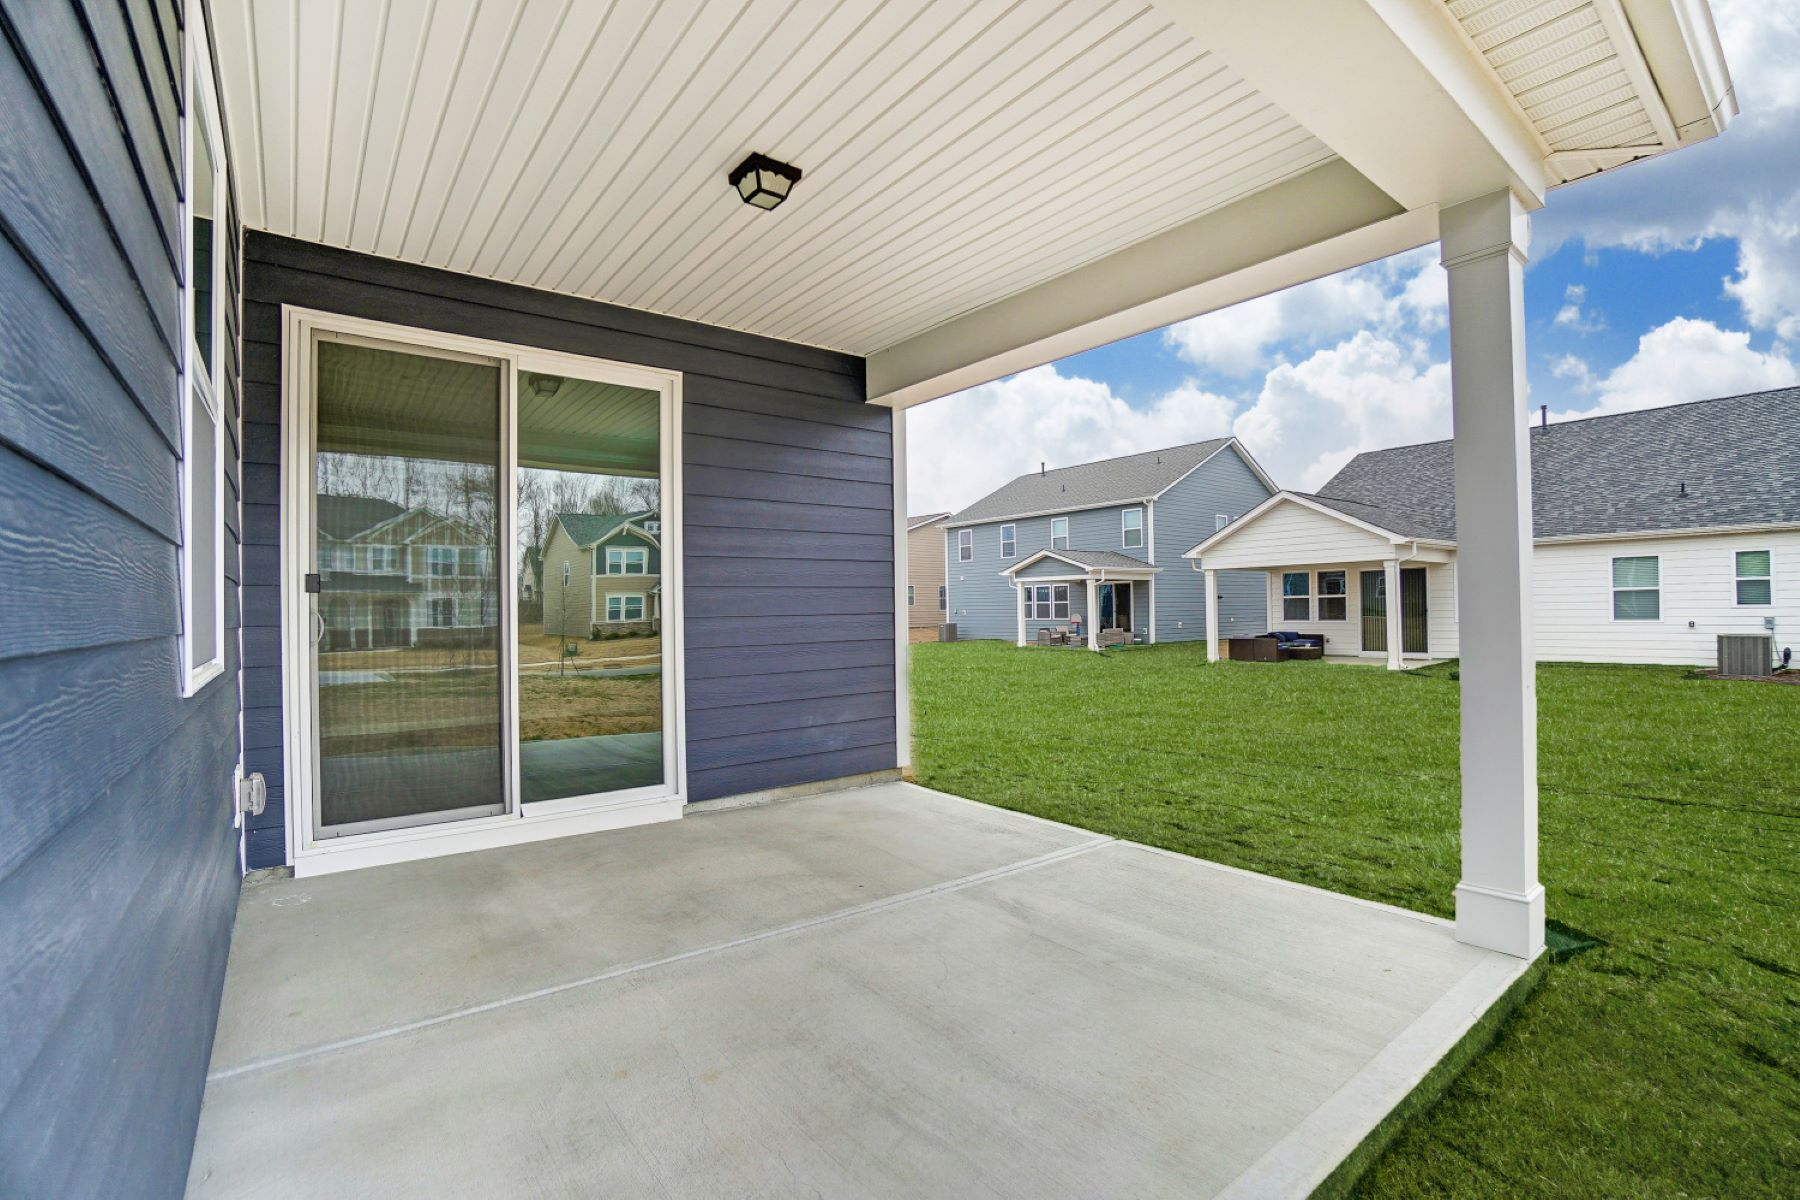 Evelyn Plan Patio at Braeburn in Indian Trail North Carolina by Mattamy Homes